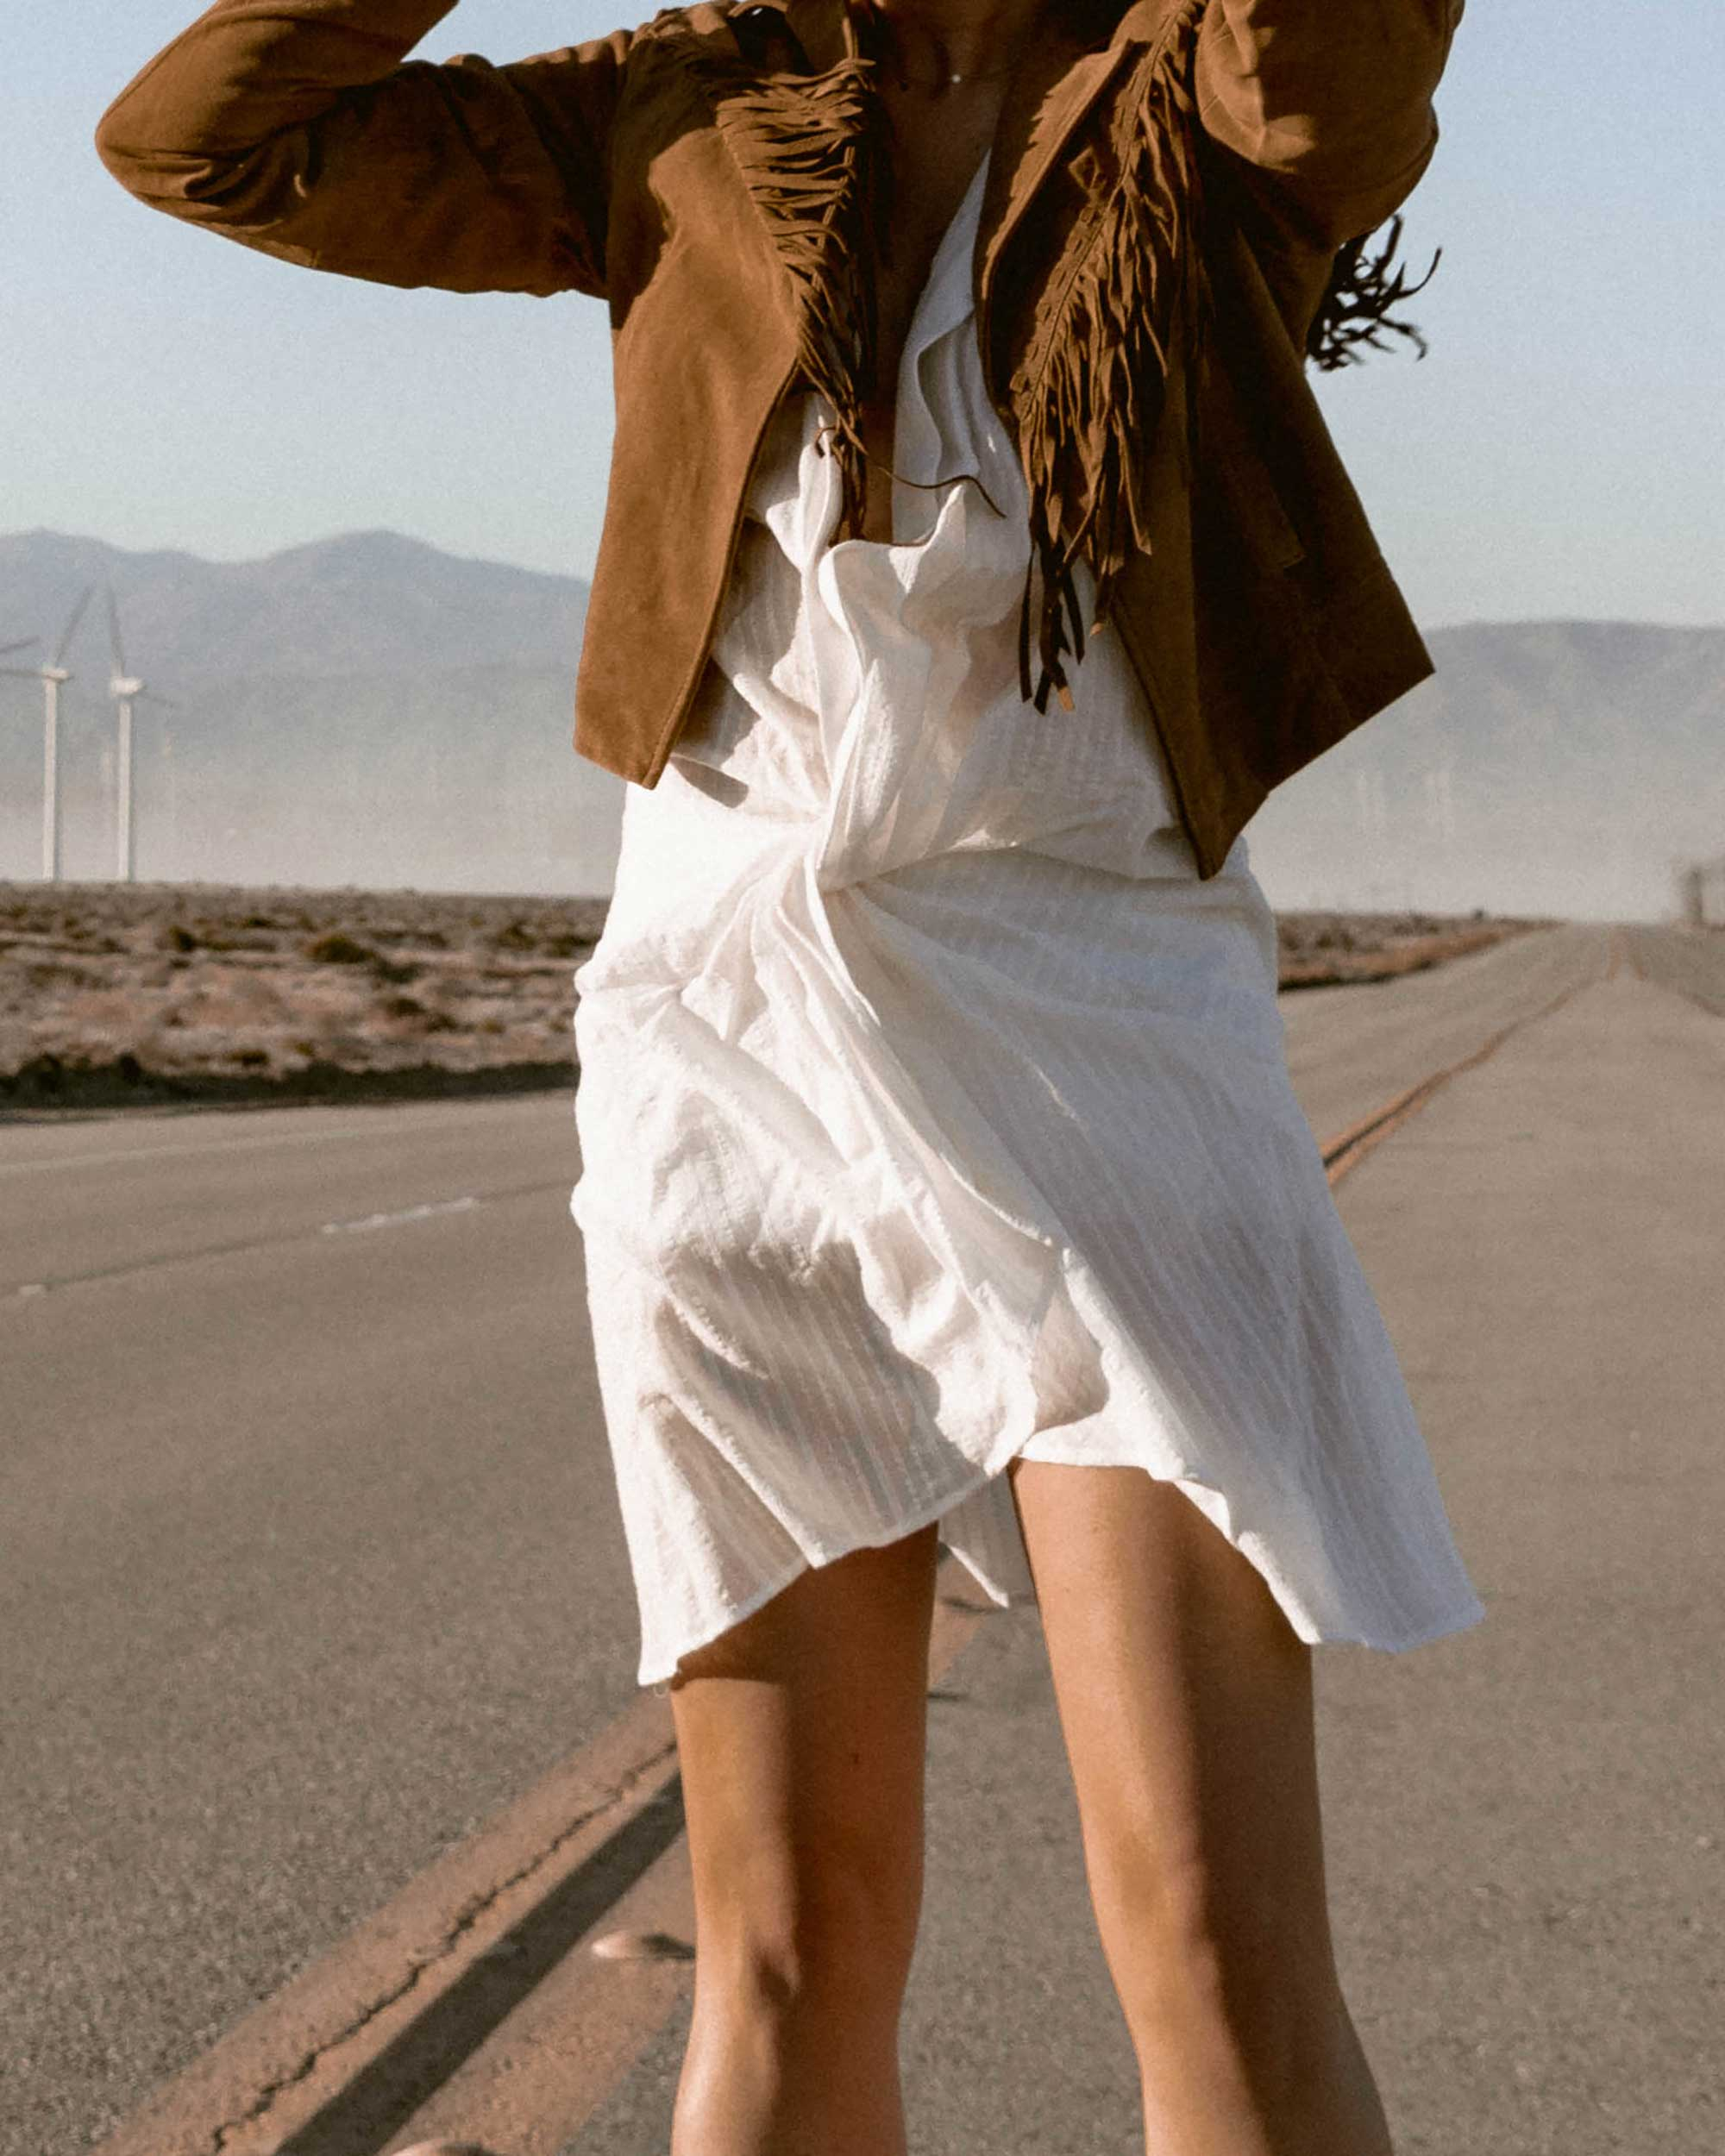 Sarah-Butler-of-Sarah-Styles-Seattle-wears-Jacquemus-Alassio-draped-white-cotton-mini-dress,-Paige-Darlene-Fringed-Suede-Jacket,-and-Paige-suede-western-boot-in-Palm-Springs-for-Coachella-Festival-Outfit-_-@sarahchristine2.jpg